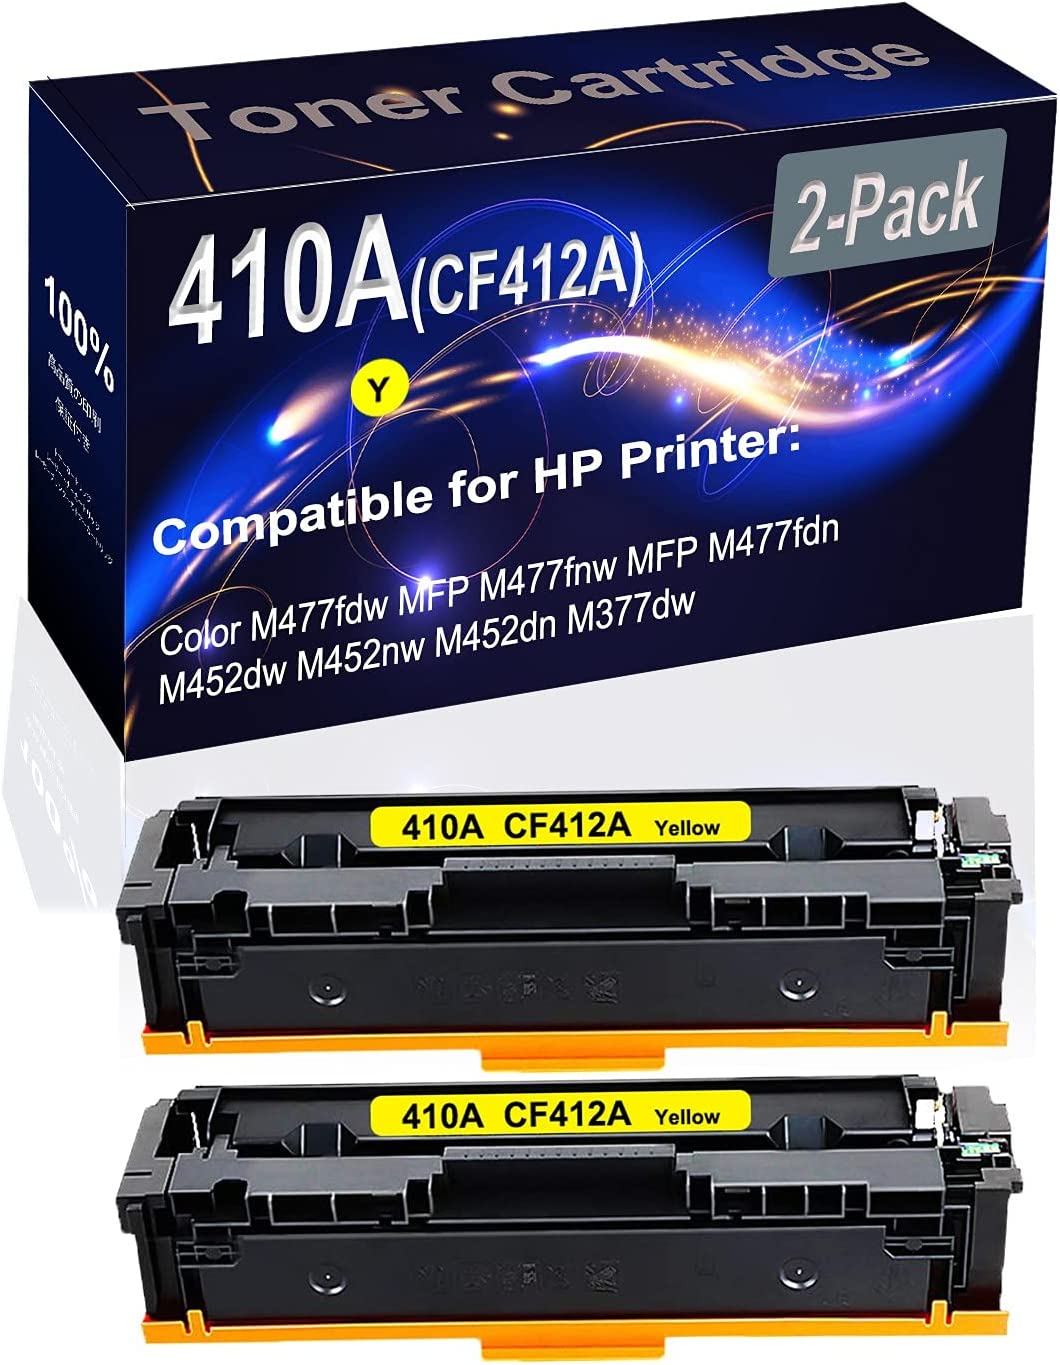 2-Pack (Yellow) Compatible M477fdw MFP M477fnw MFP M477fdn M452dw Laser Printer Toner Cartridge (High Capacity) Replacement for HP 410A (CF412A) Printer Toner Cartridge